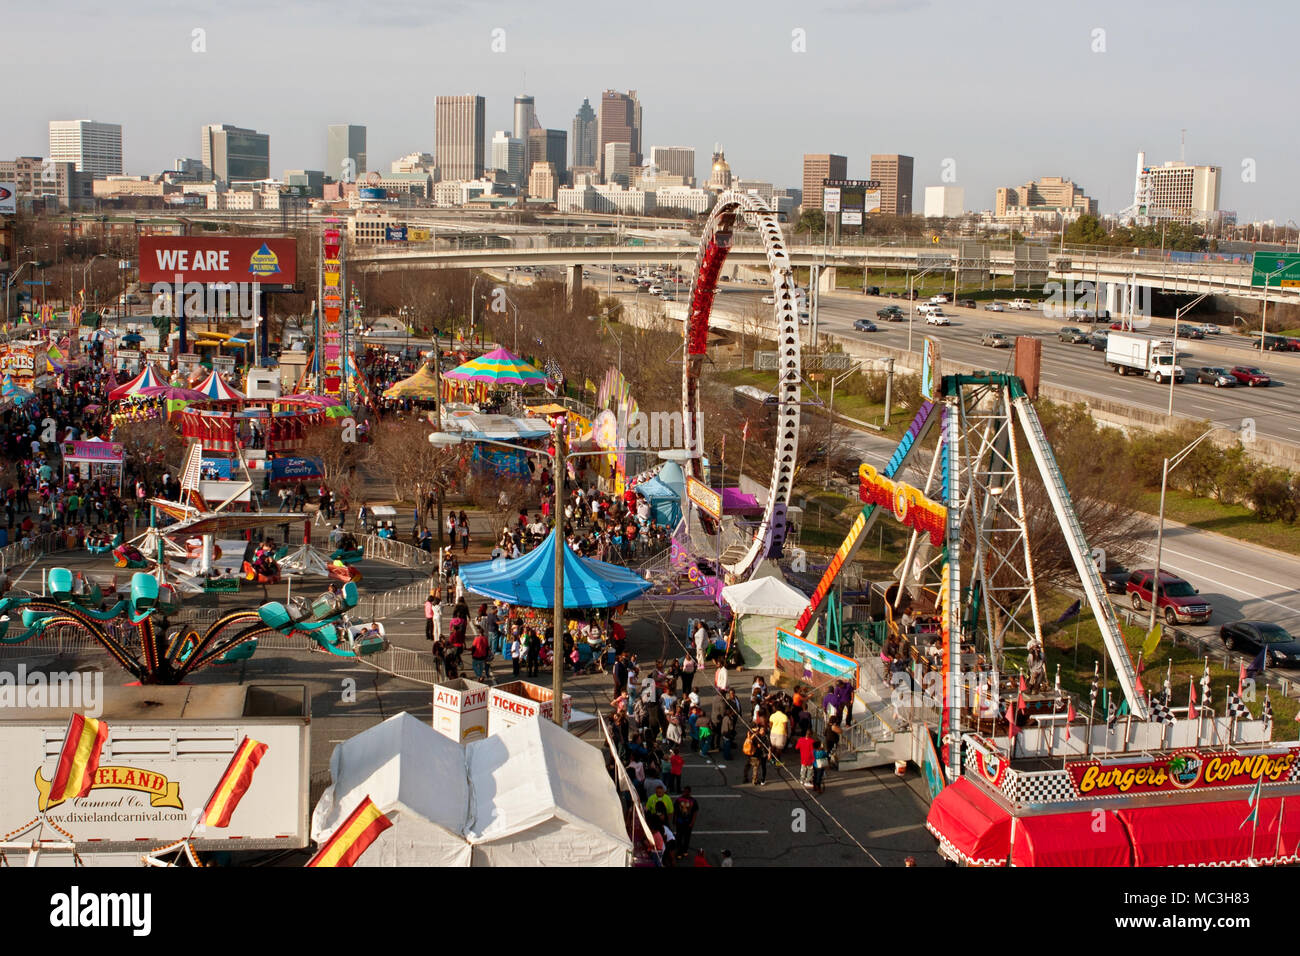 Atlanta, GA, USA - March 15, 2014:  Elevated wide shot of annual Atlanta Fair, with city skyline in background. - Stock Image